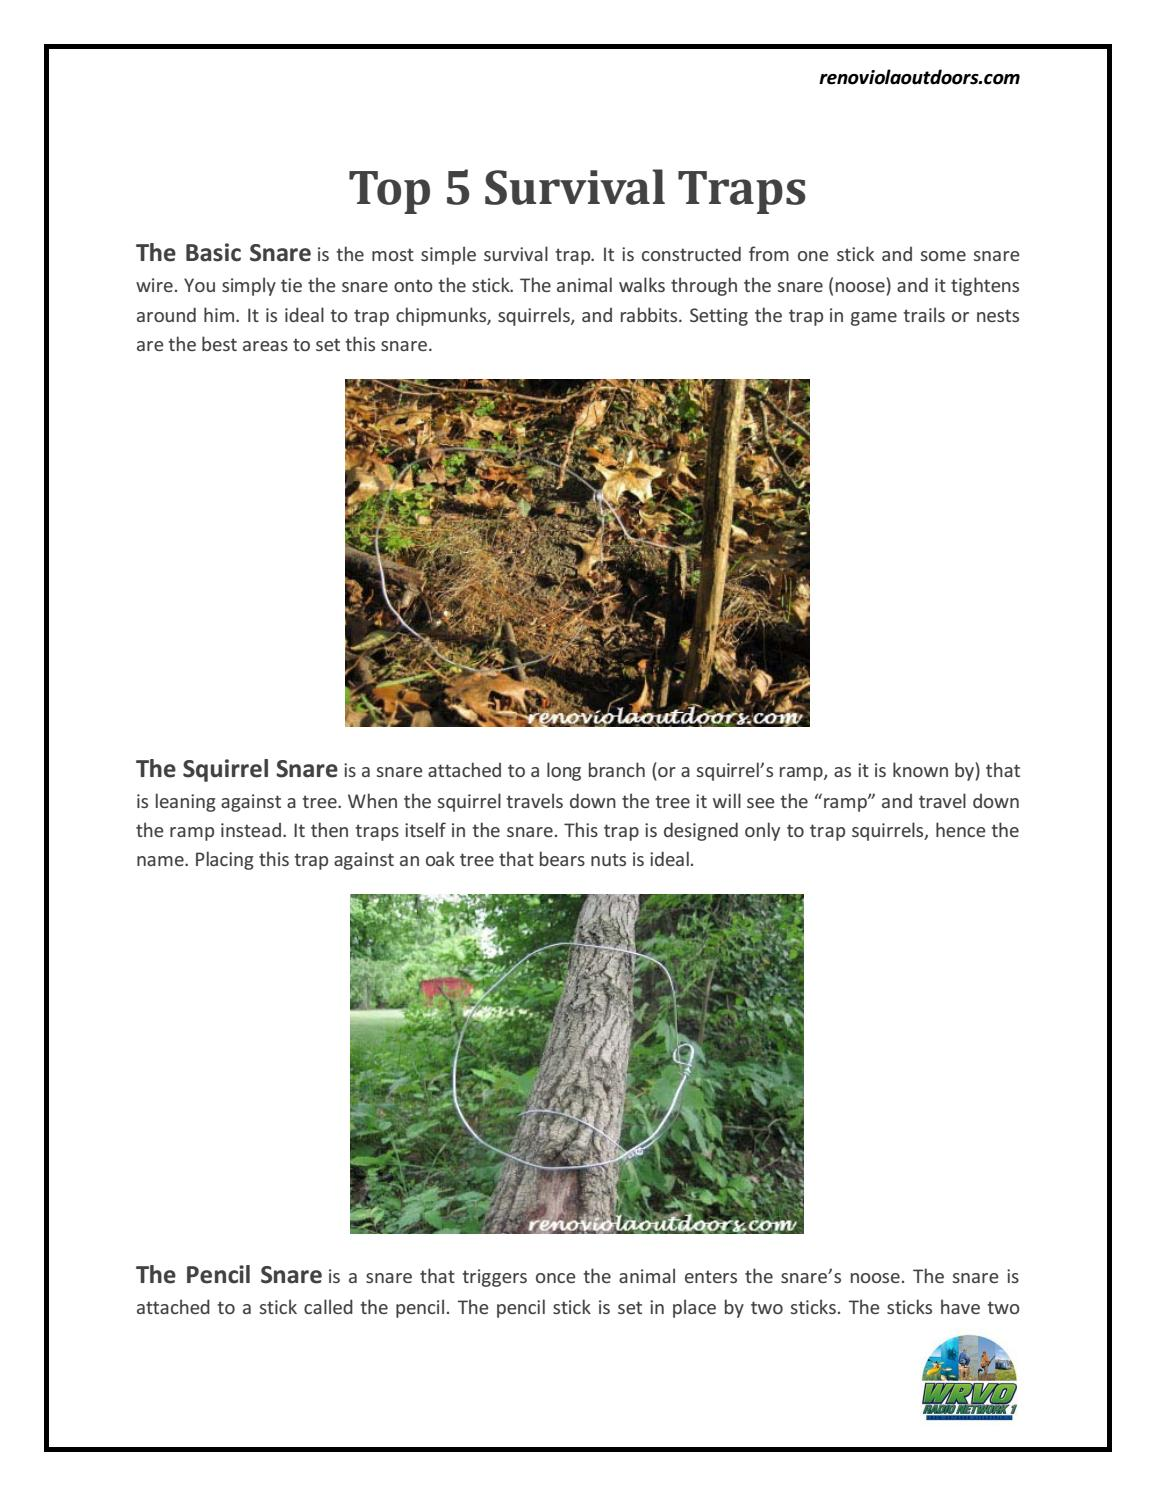 Top Forest Survival Traps : WRVO Radio Network1 by WRVO Radio